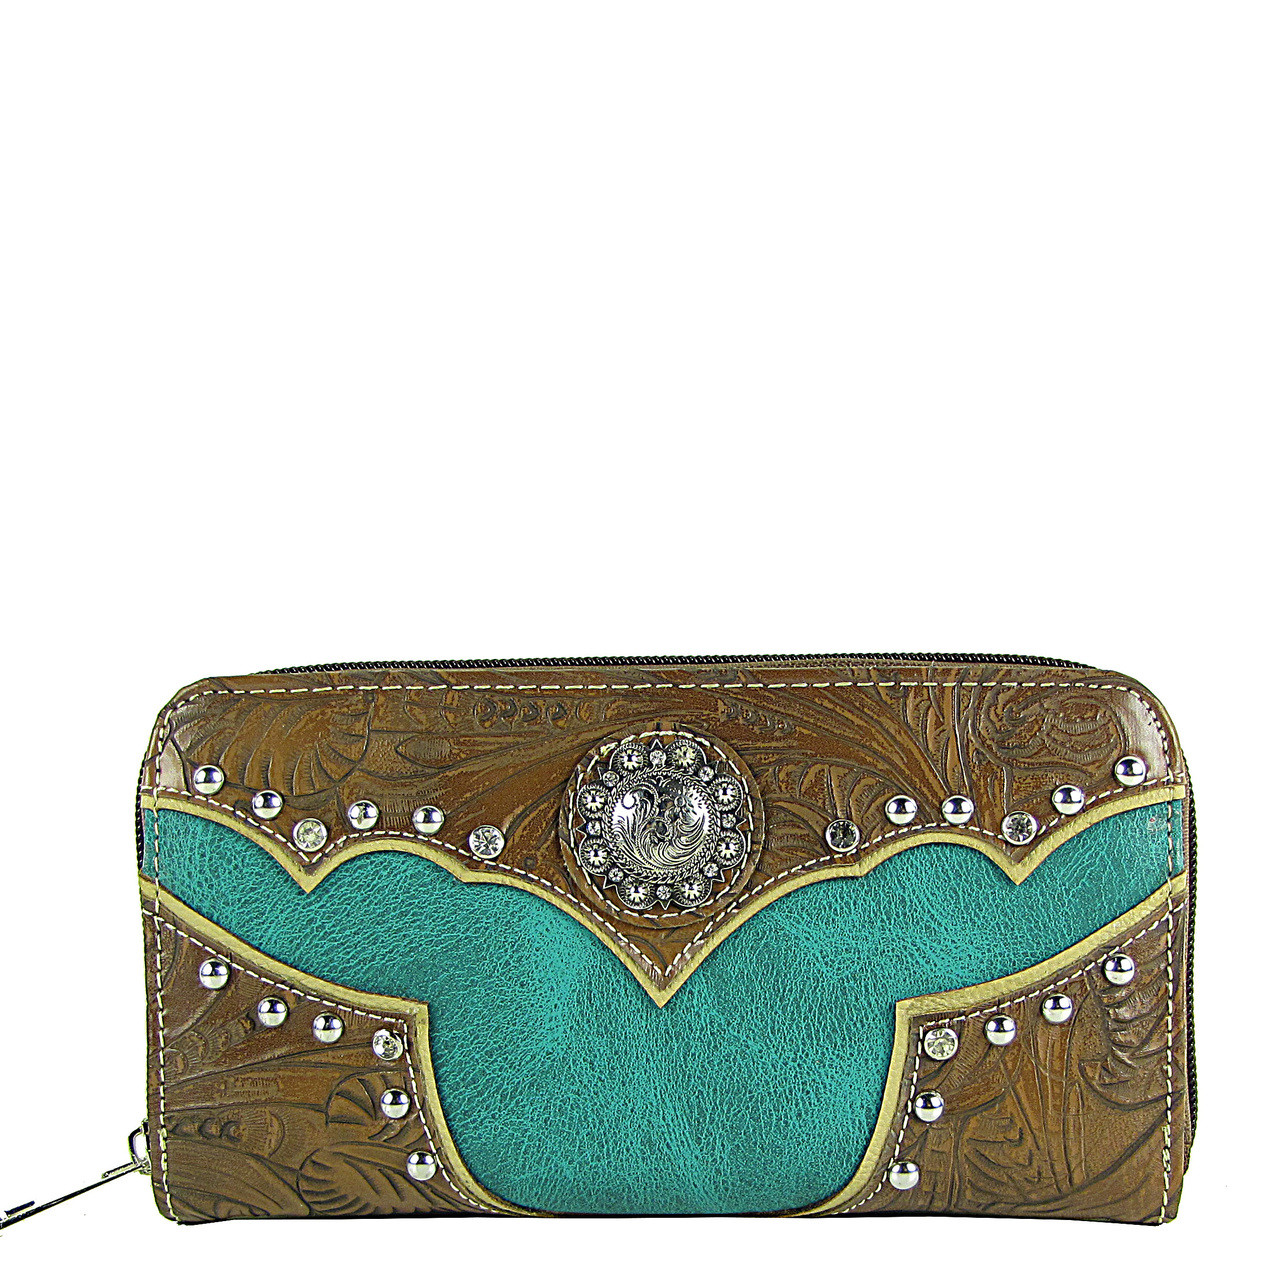 TURQUOISE WESTERN STUDDED LOOK ZIPPER WALLET CB3-1202TRQ